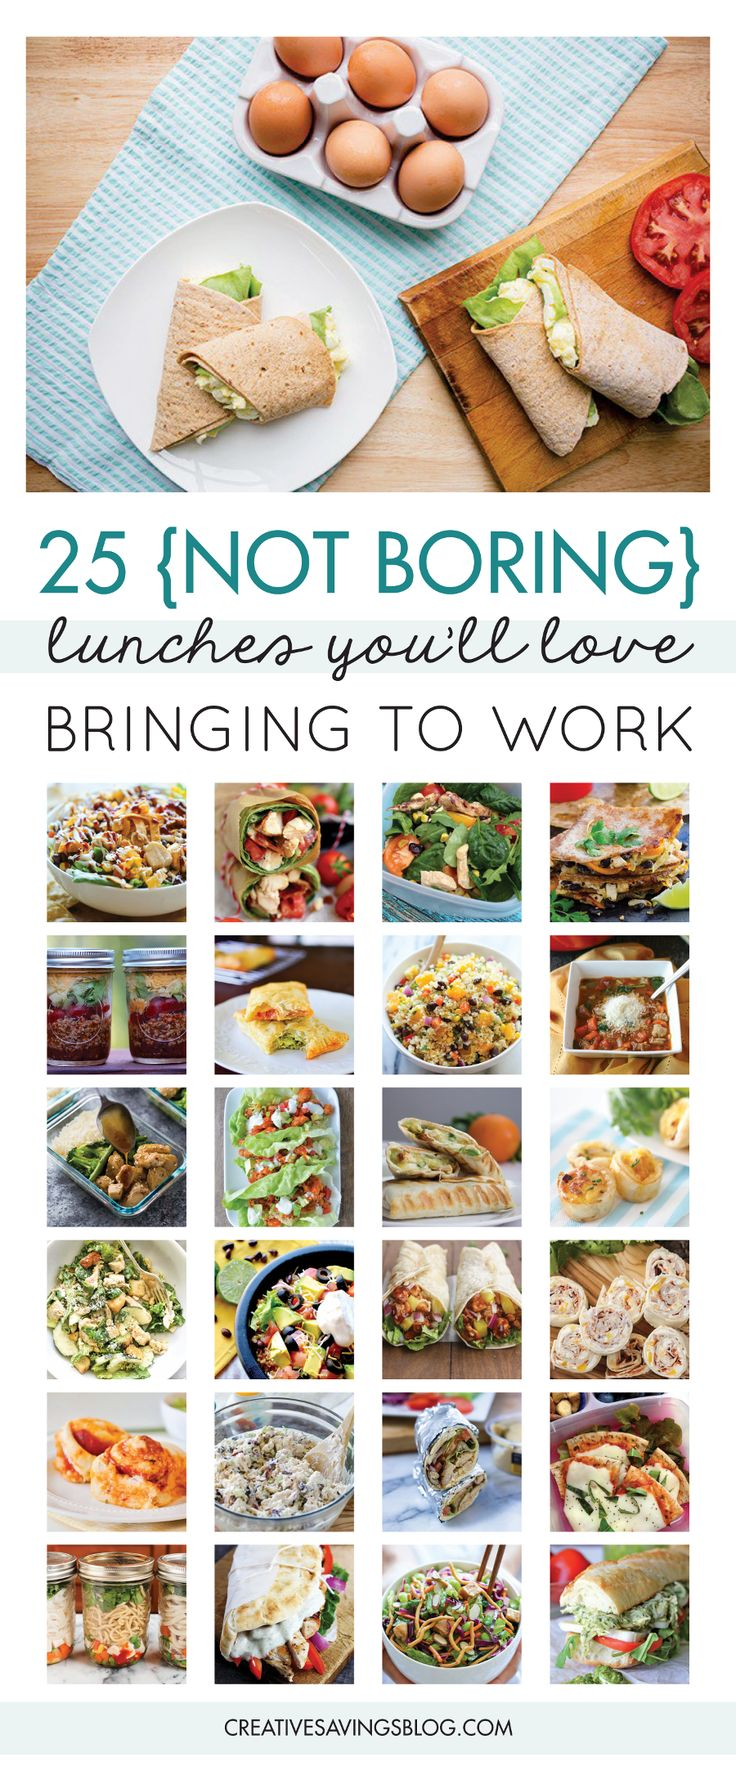 Pack your lunch. It's such a simple statement, but did you know this simple act can save you $500 or more each year?! So what's holding you back? Do you need packed lunch ideas...or more specifically work lunch ideas? These 7 creative ways to avoid the eating out trap at work, will not only save money, they'll also help jumpstart a healthy lifestyle. Let's face it—healthy work lunches make you feel 100 times better than greasy fast food ever could! via @creativesavings